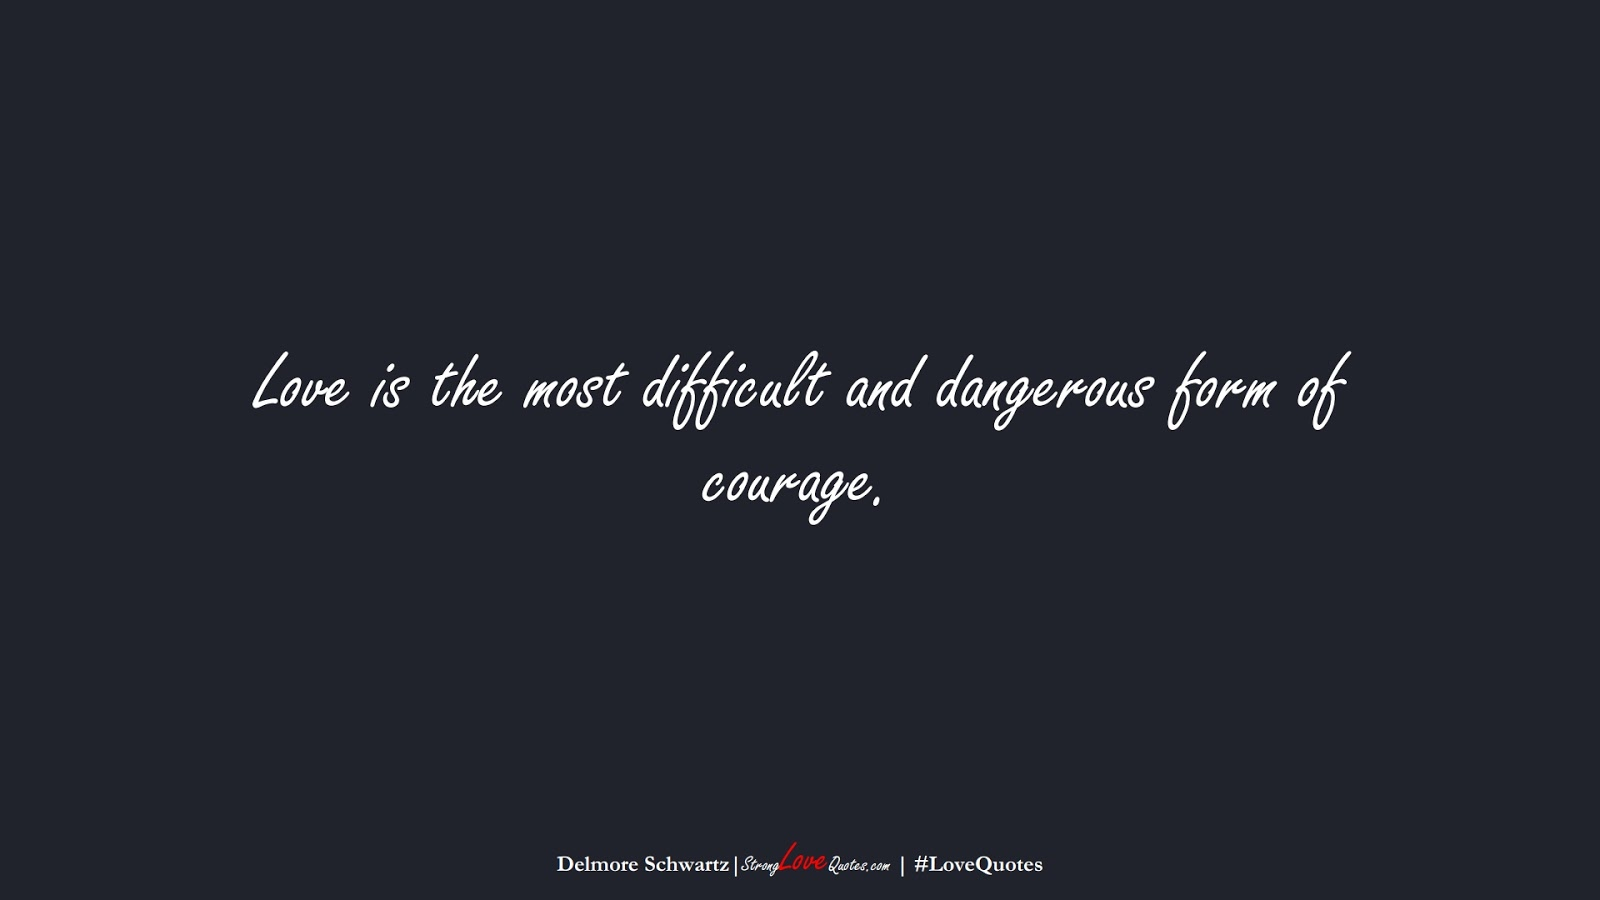 Love is the most difficult and dangerous form of courage. (Delmore Schwartz);  #LoveQuotes